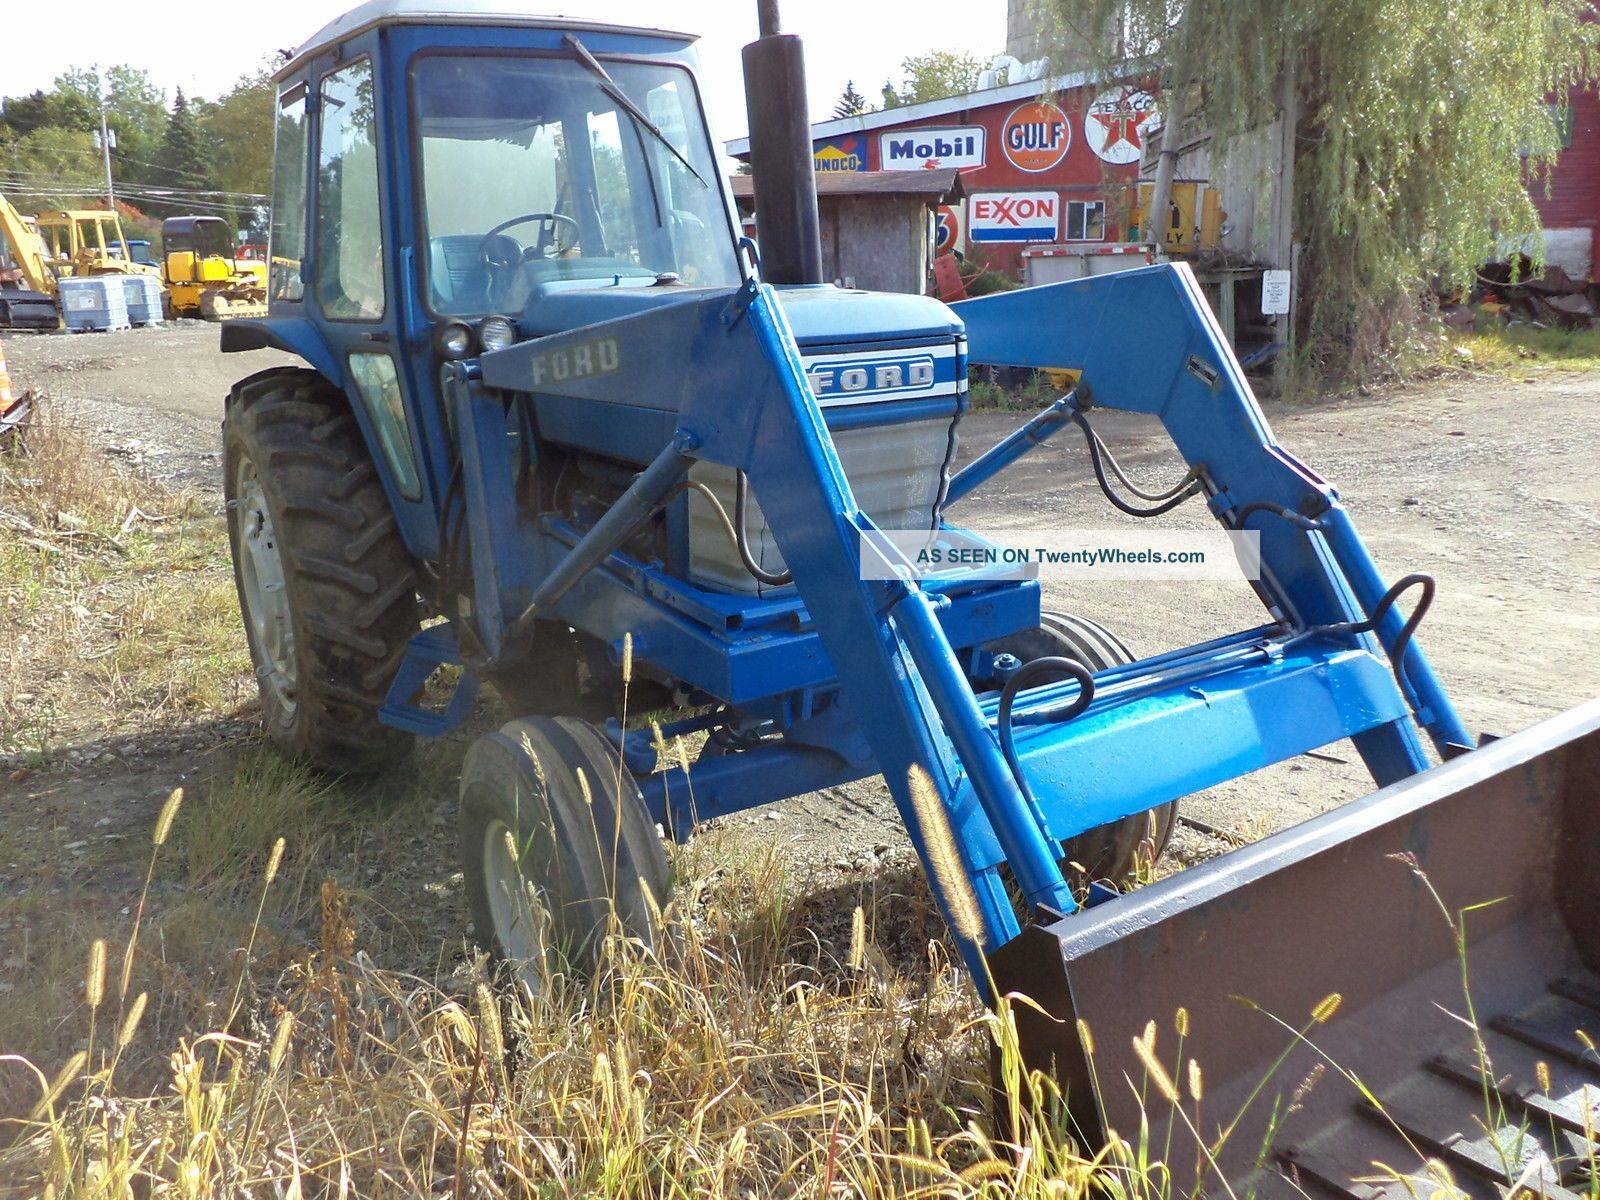 Ford Tractor Airplane : Ford tractor with loader cab diesel pto heater